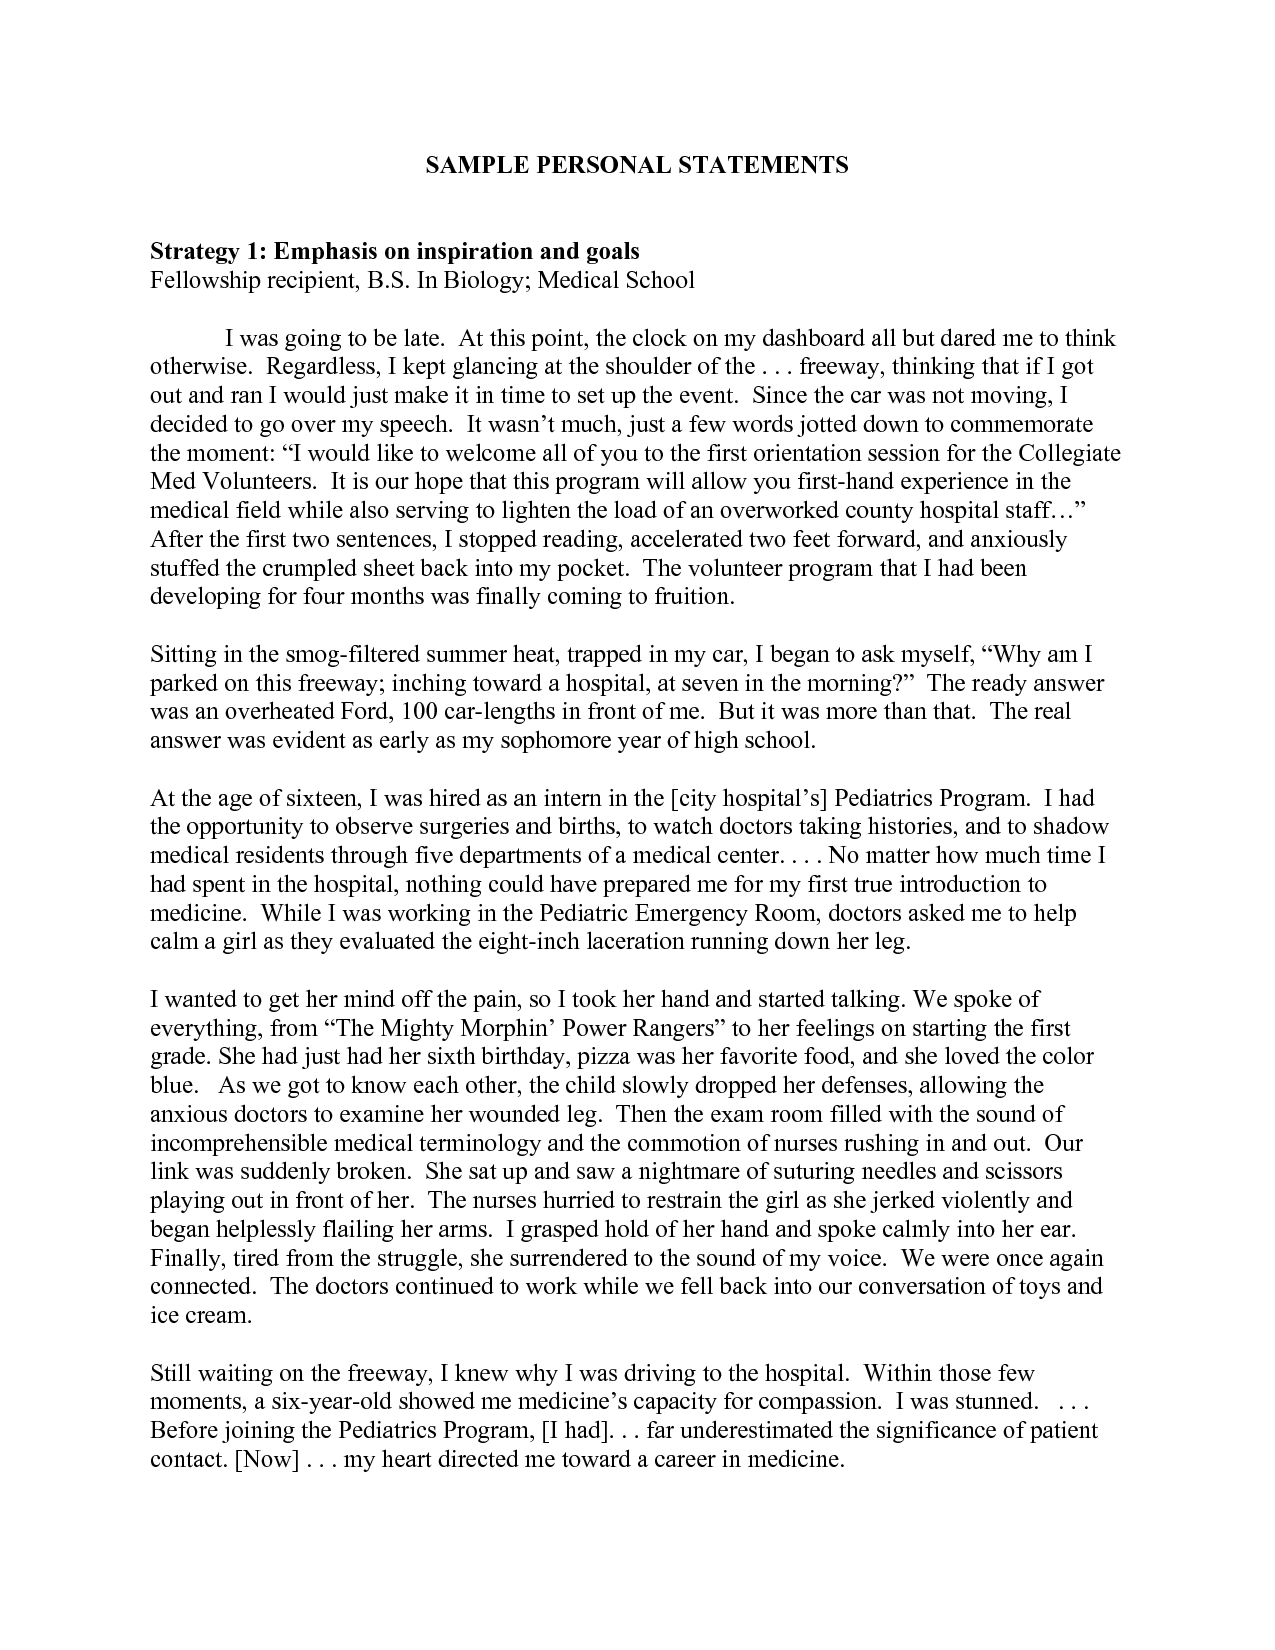 Personal Statement Essay For Graduate School - Write a